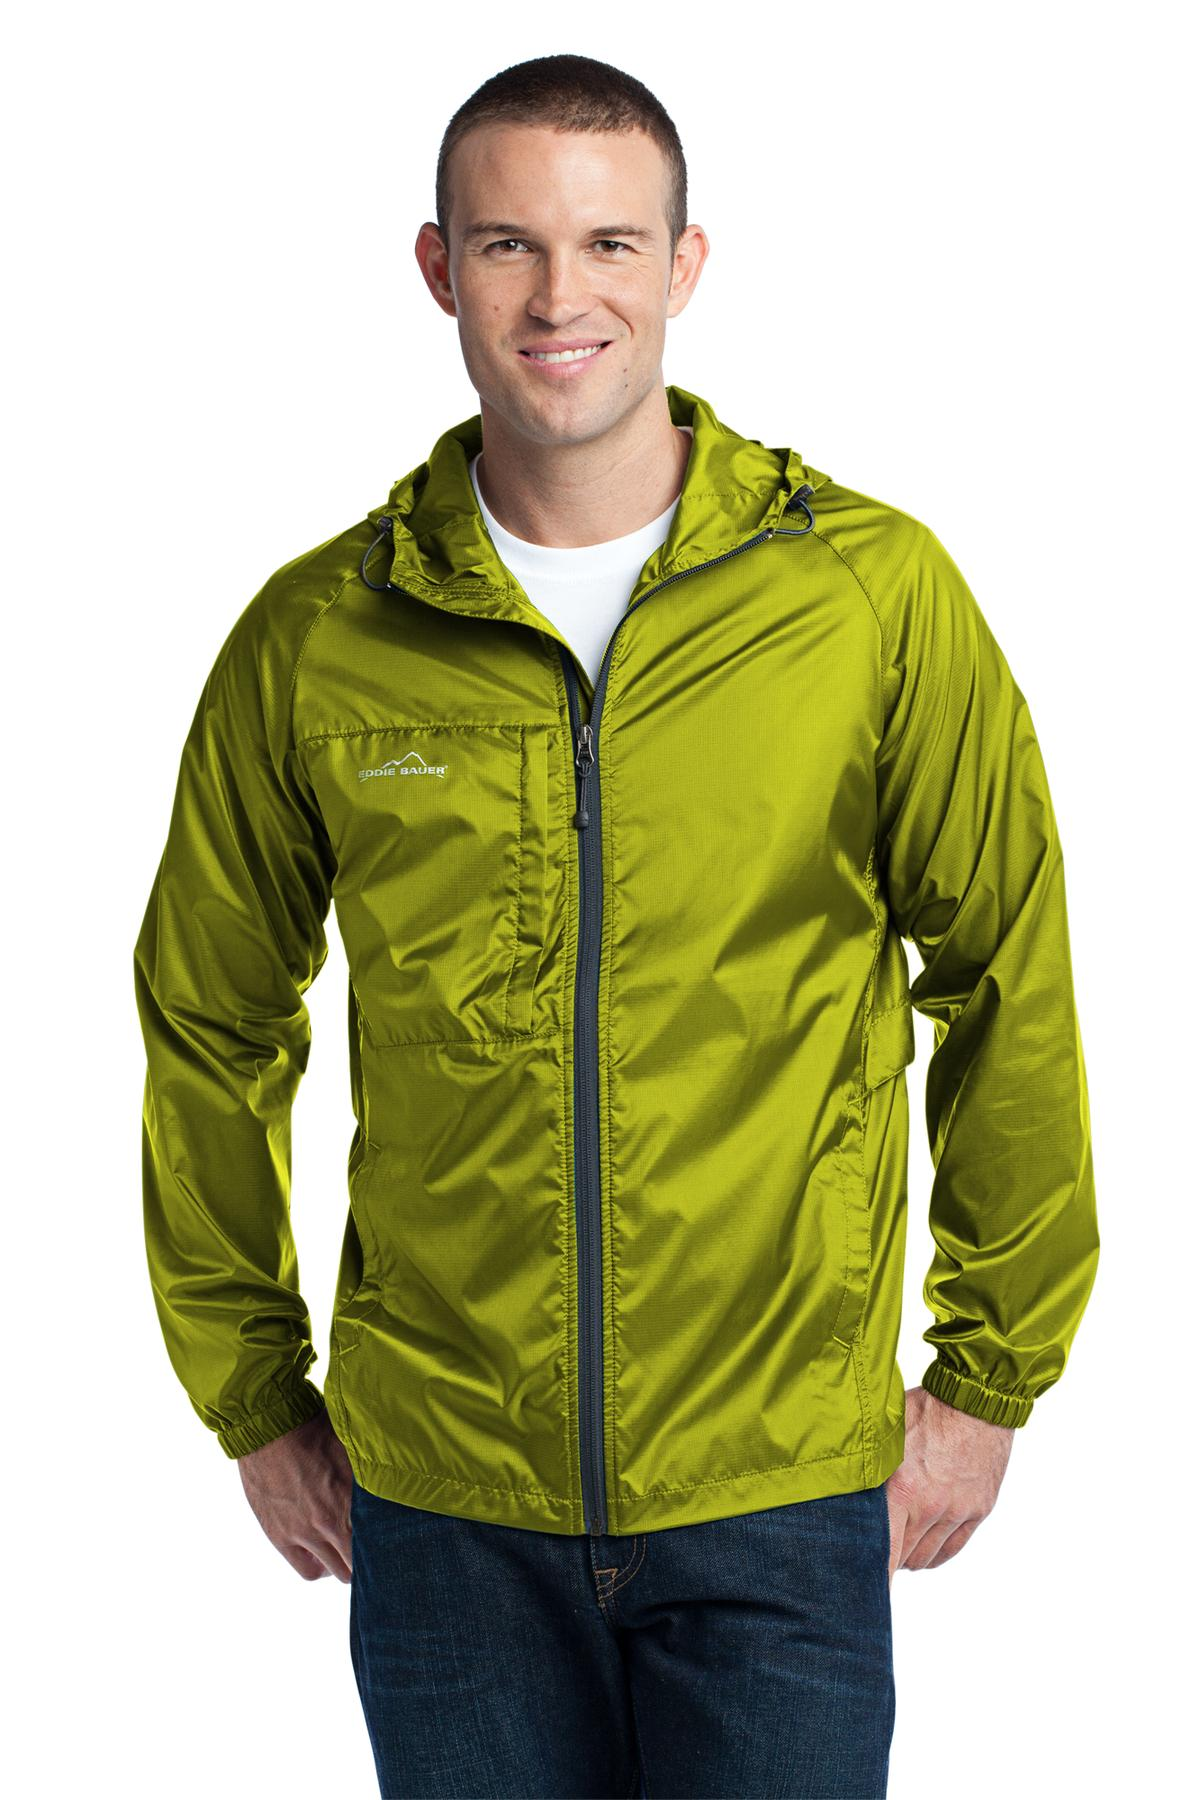 Outerwear-Parkas-Shells-Systems-1